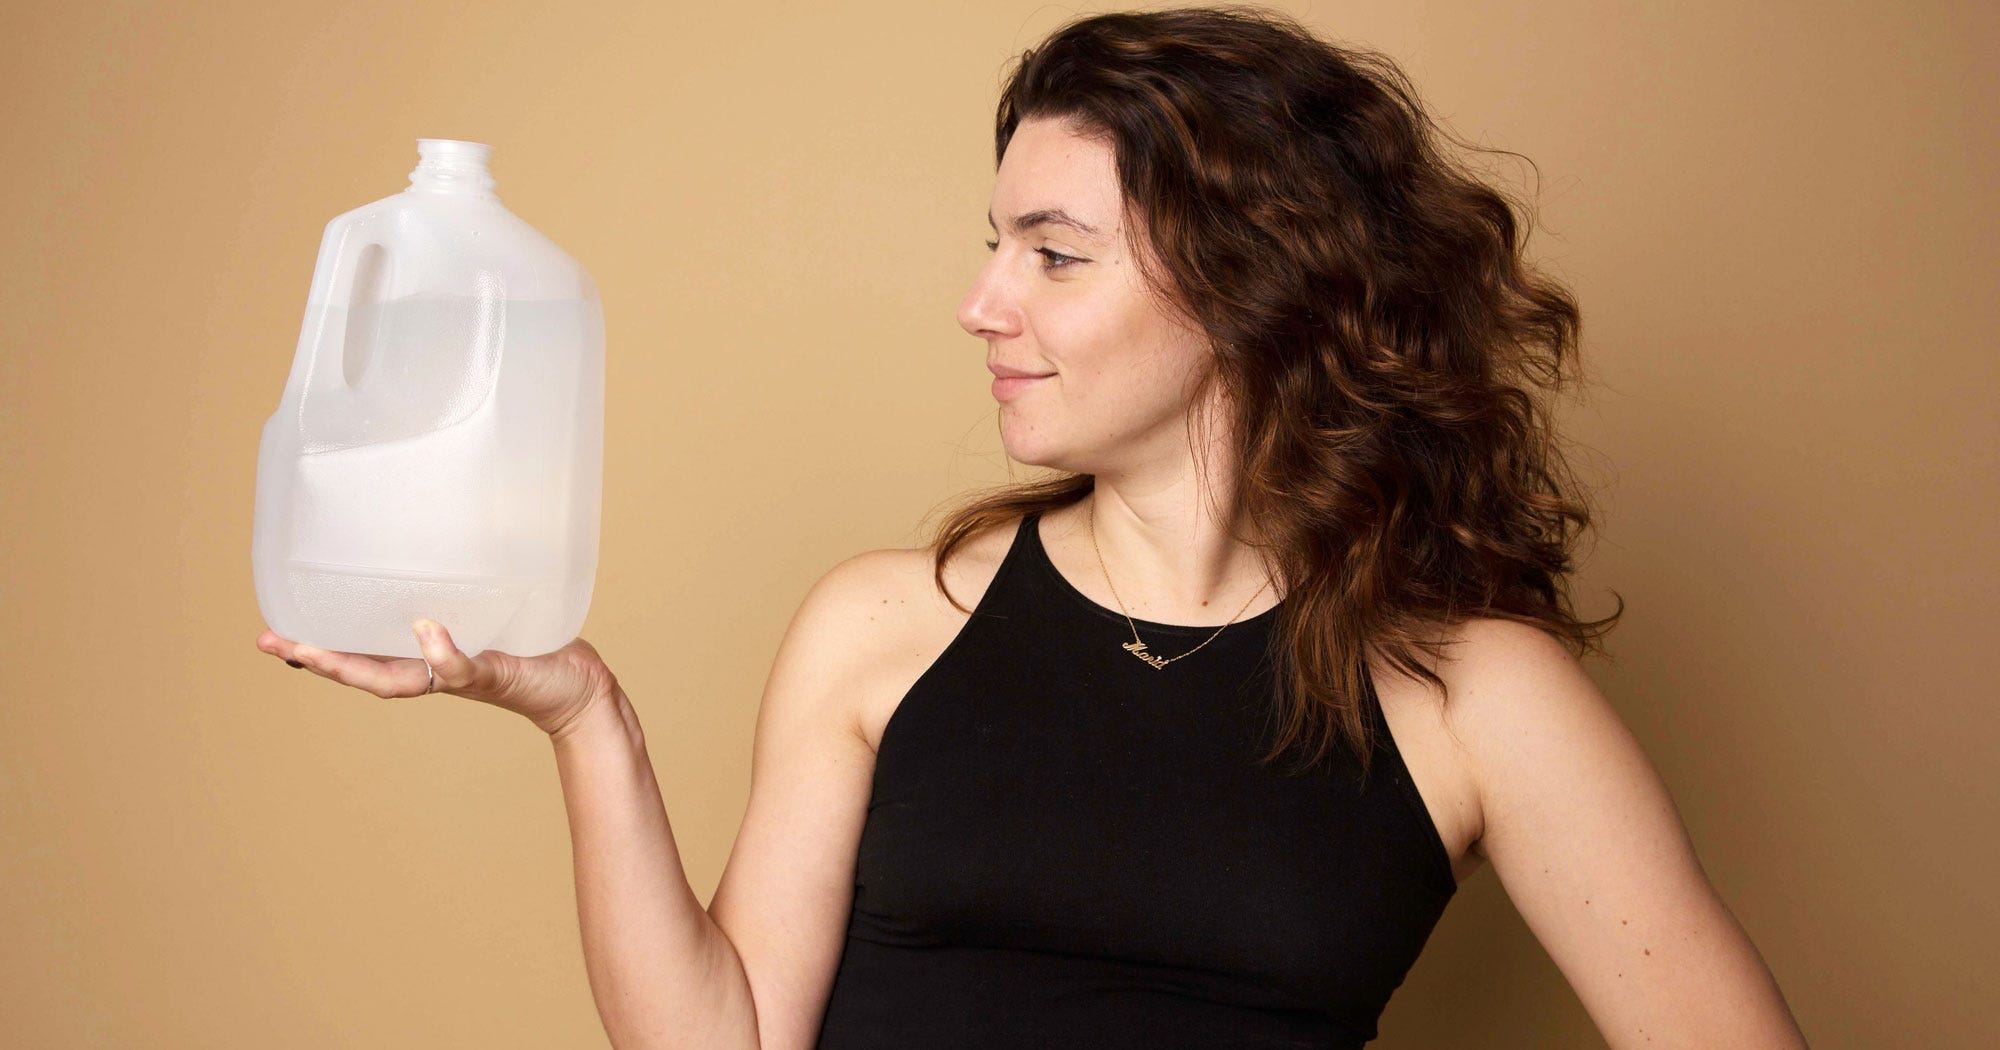 I Drank A Gallon Of Water A Day For Better Skin — Here's What Happened